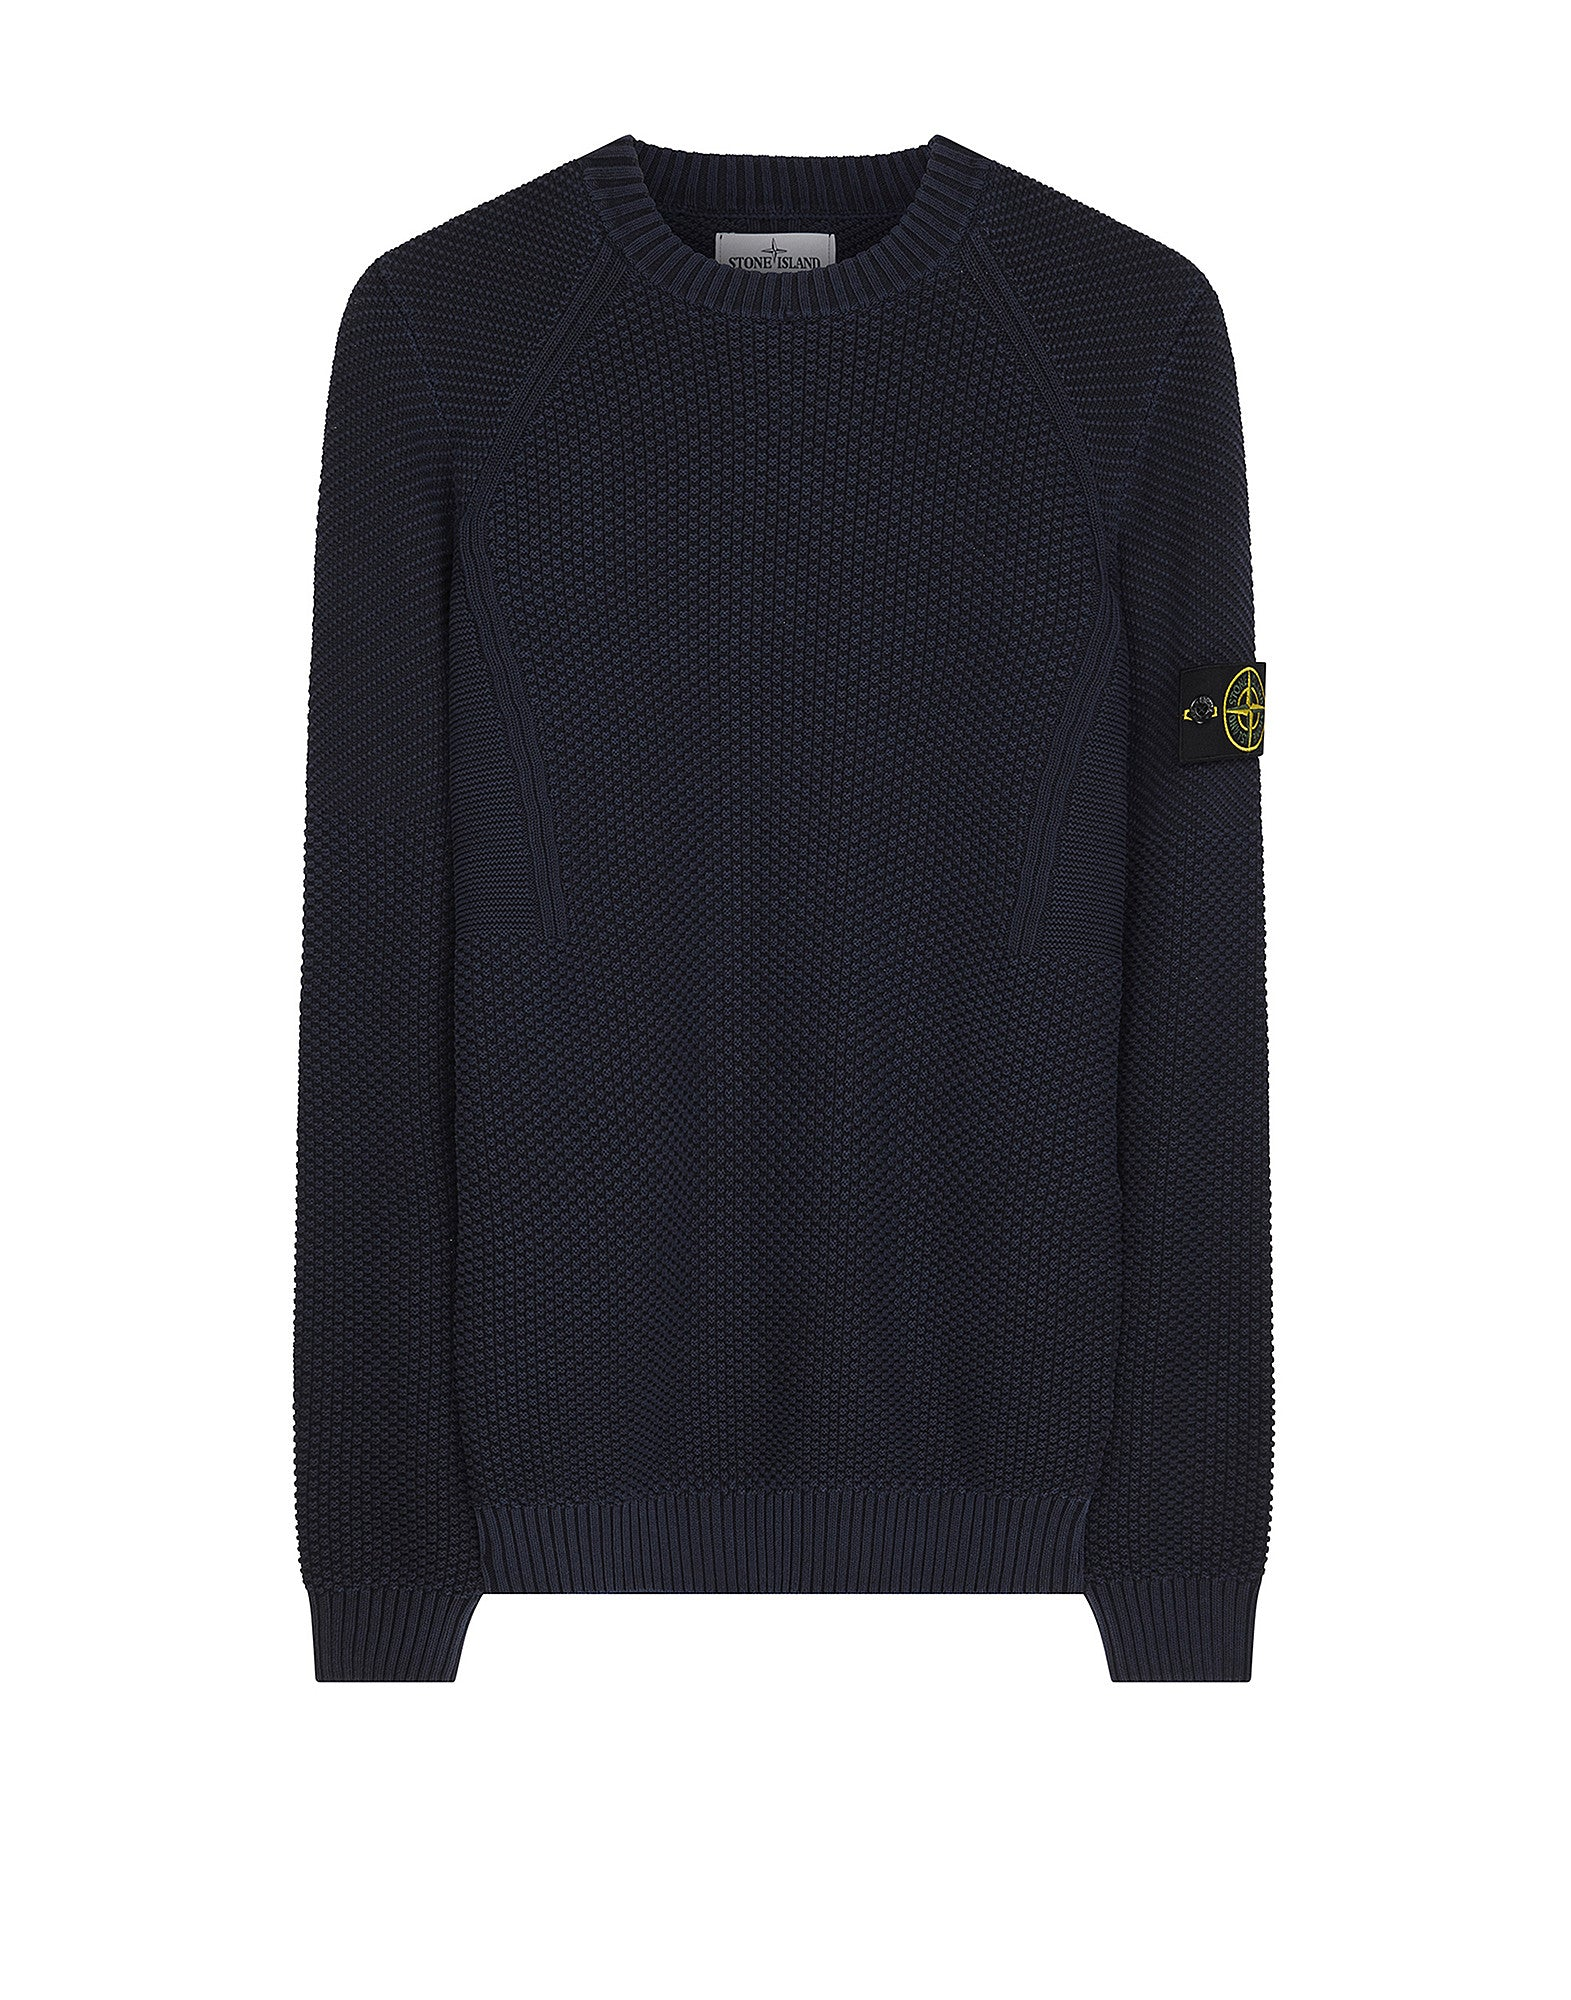 512B8 PIGMENT DYE Crewneck Knit in Navy